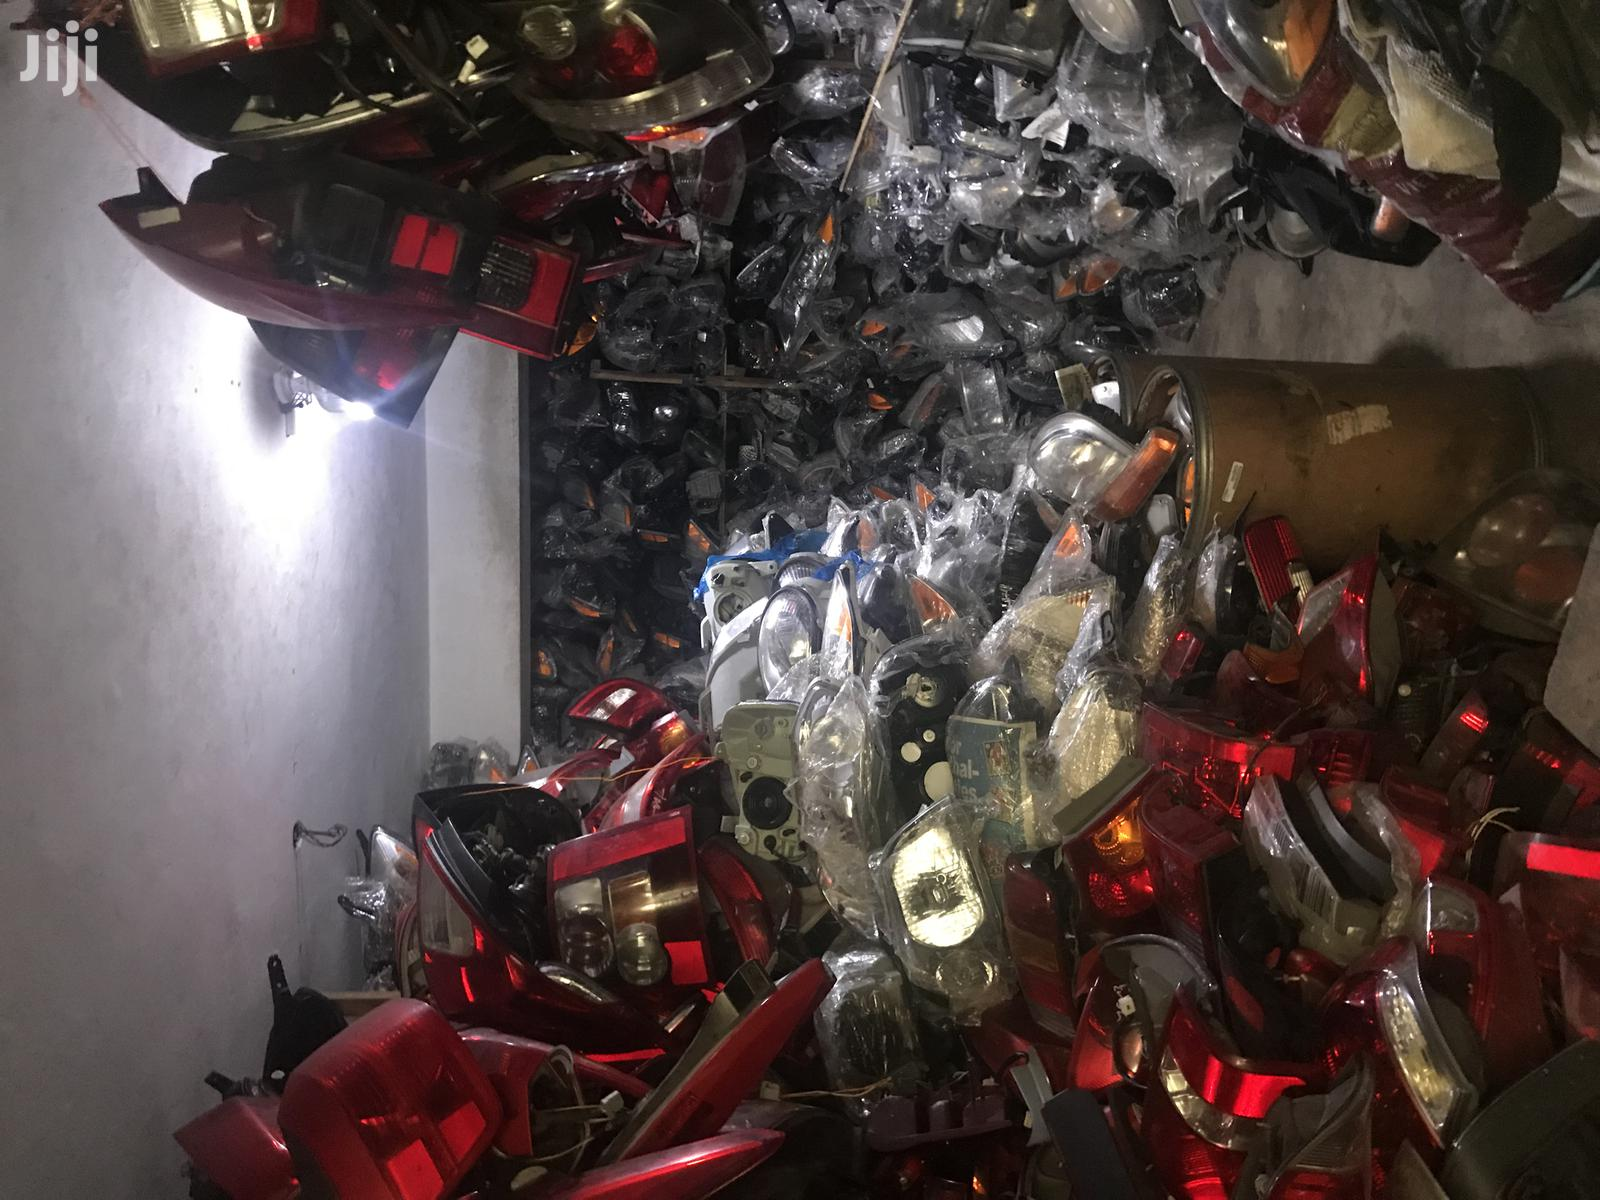 All Kinds Of Home Used Car Headlight | Vehicle Parts & Accessories for sale in Abossey Okai, Greater Accra, Ghana